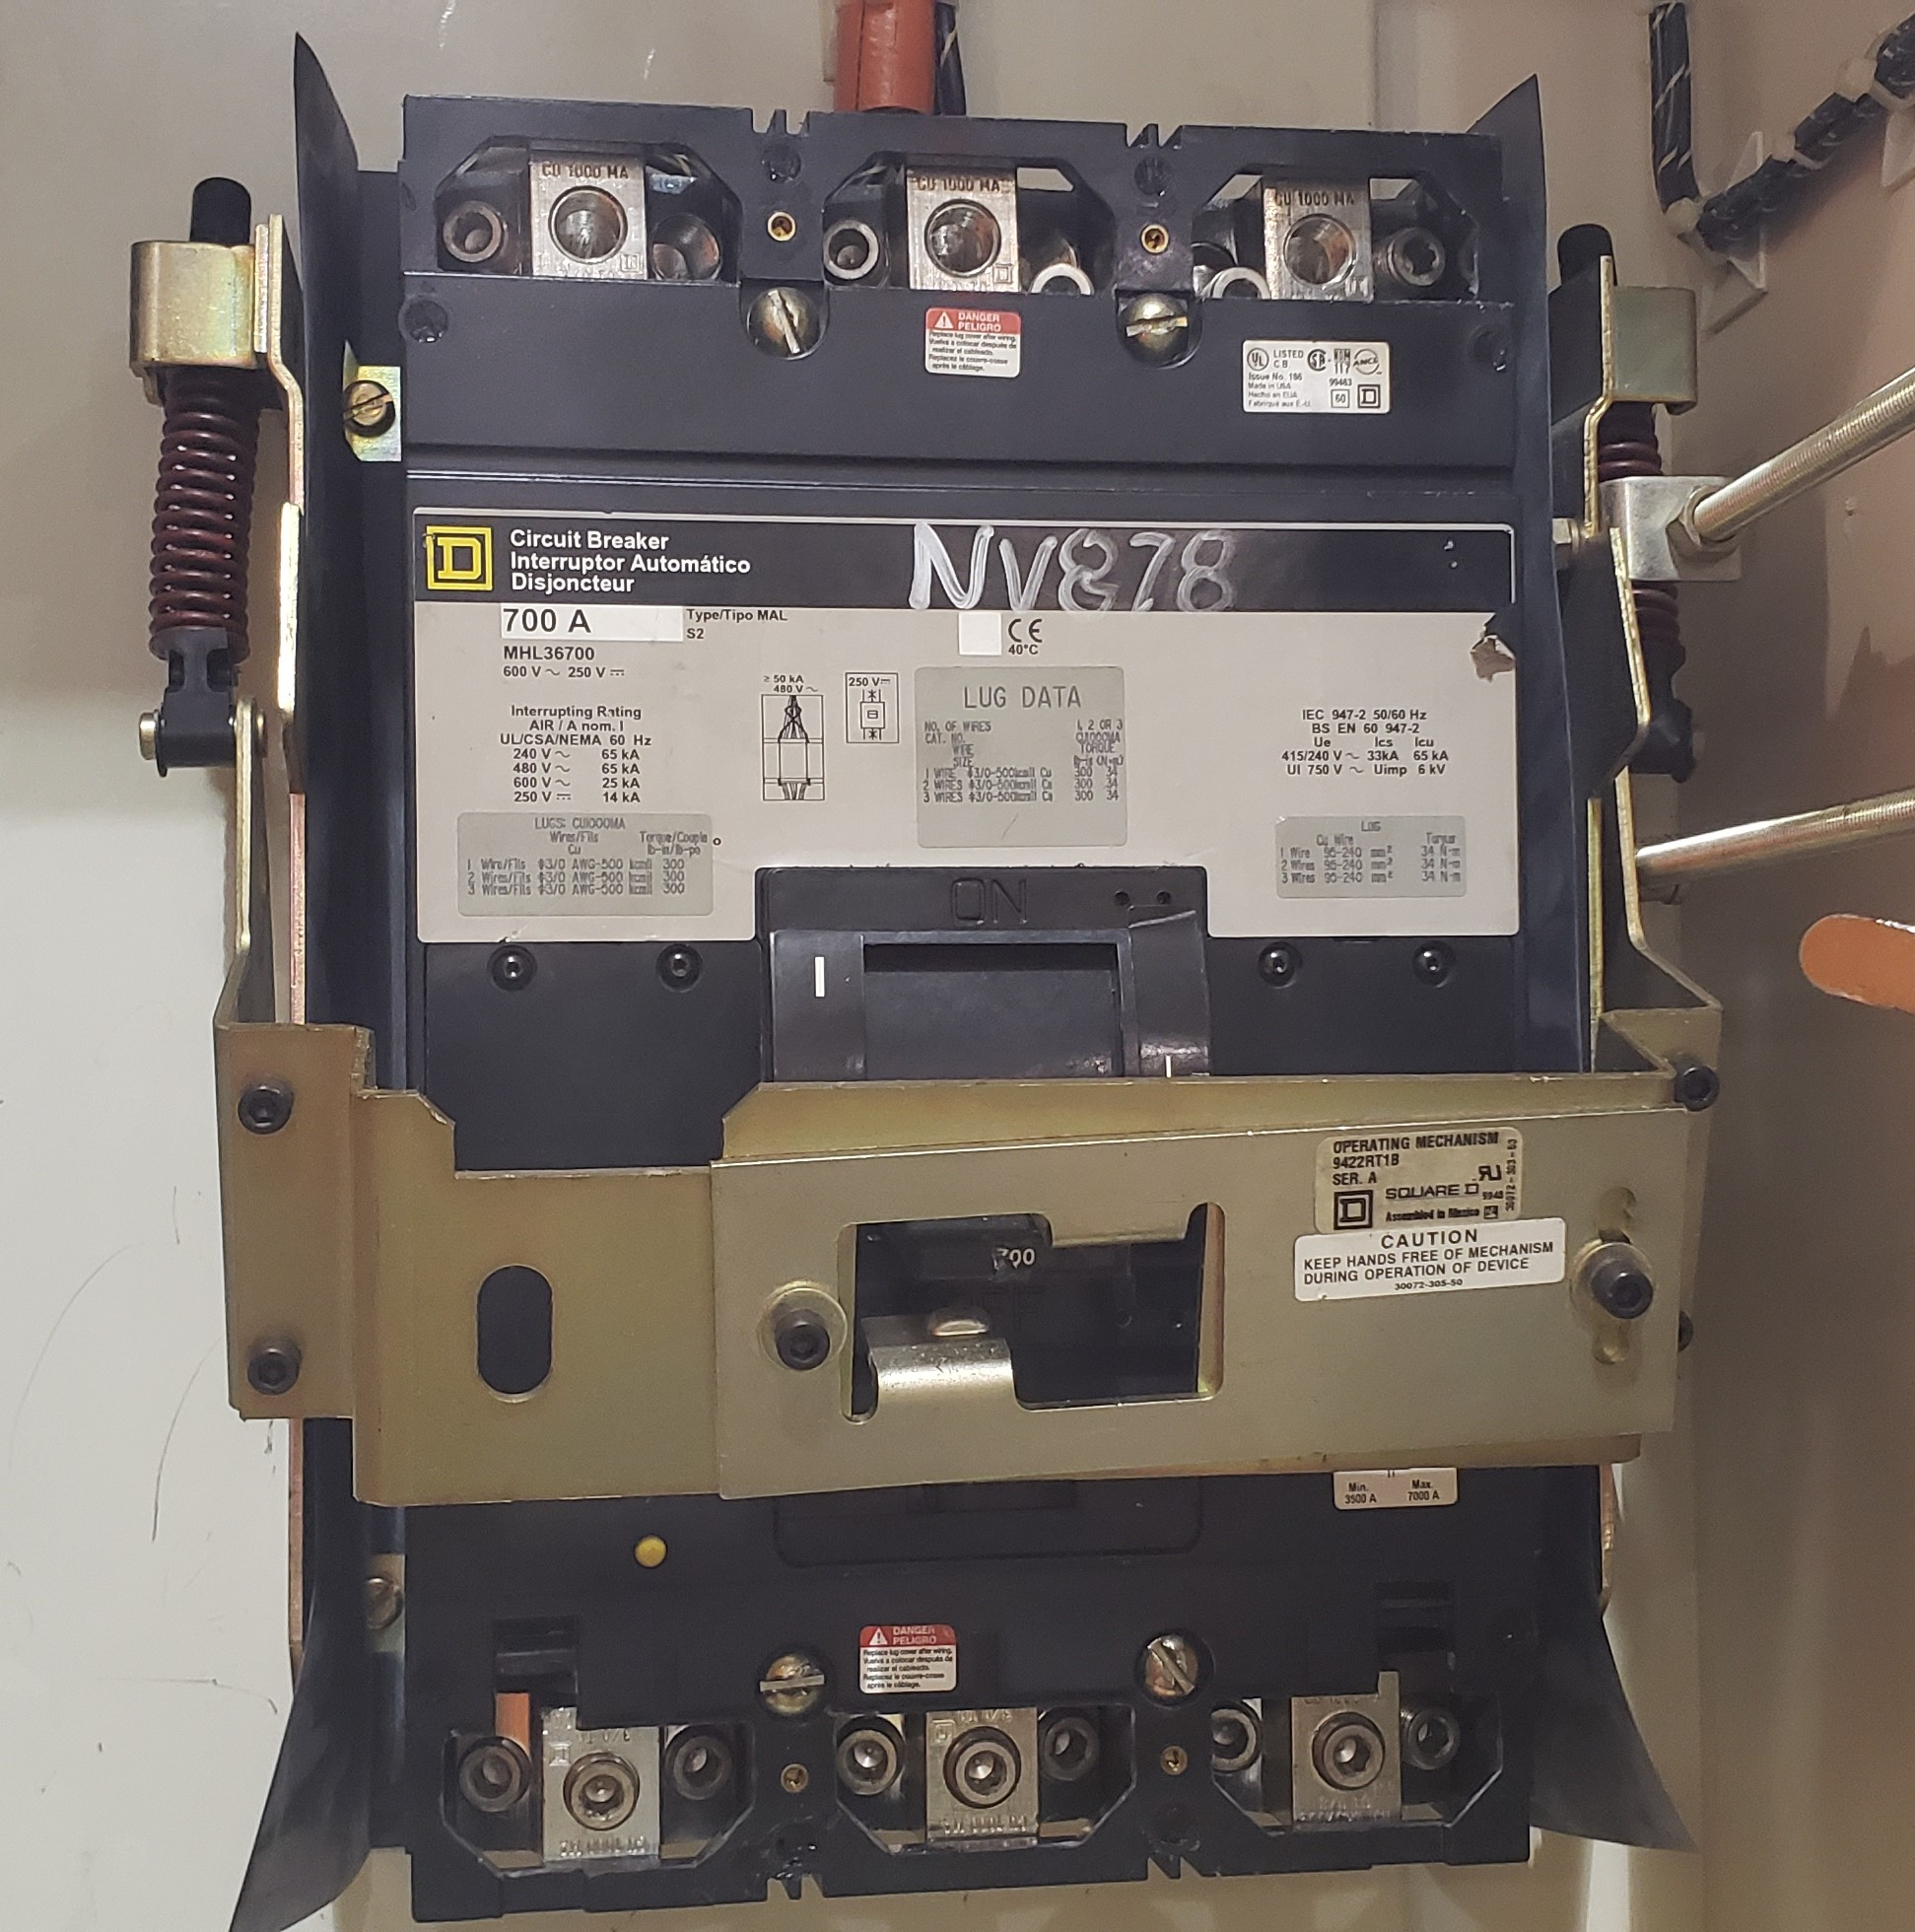 Square D 700 Amp MHL36700 Molded Case Breaker